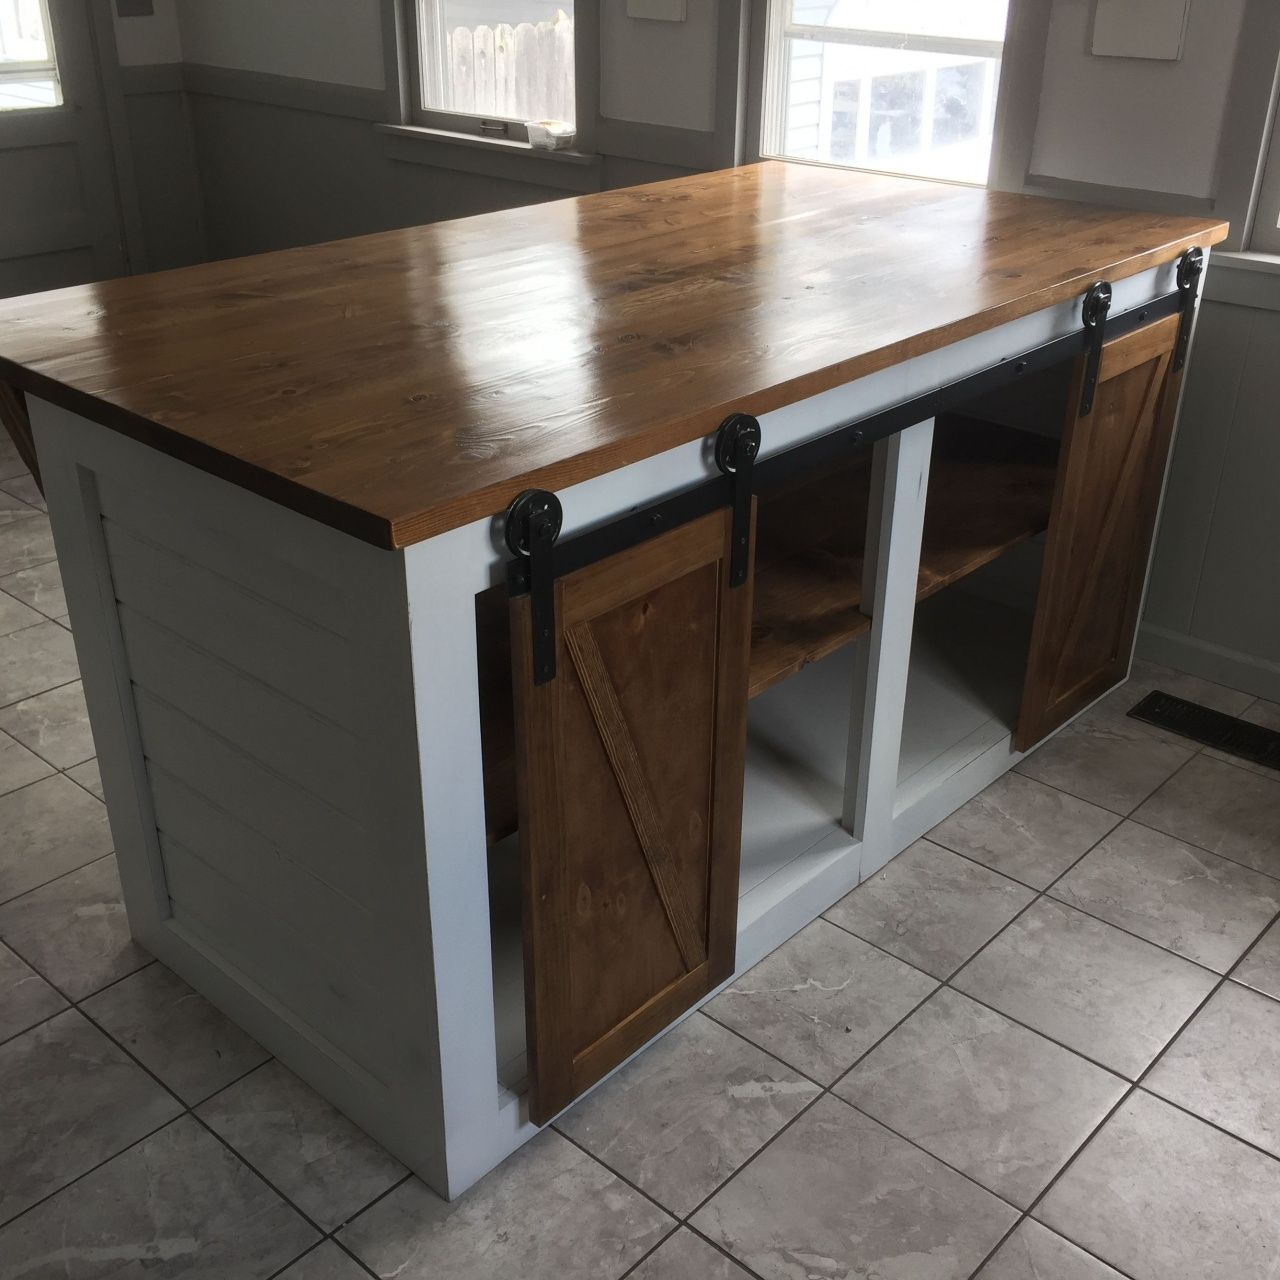 Kitchen Islands With Pull Out Table In 2020 Shiplap Kitchen Reclaimed Wood Kitchen Island Freestanding Kitchen